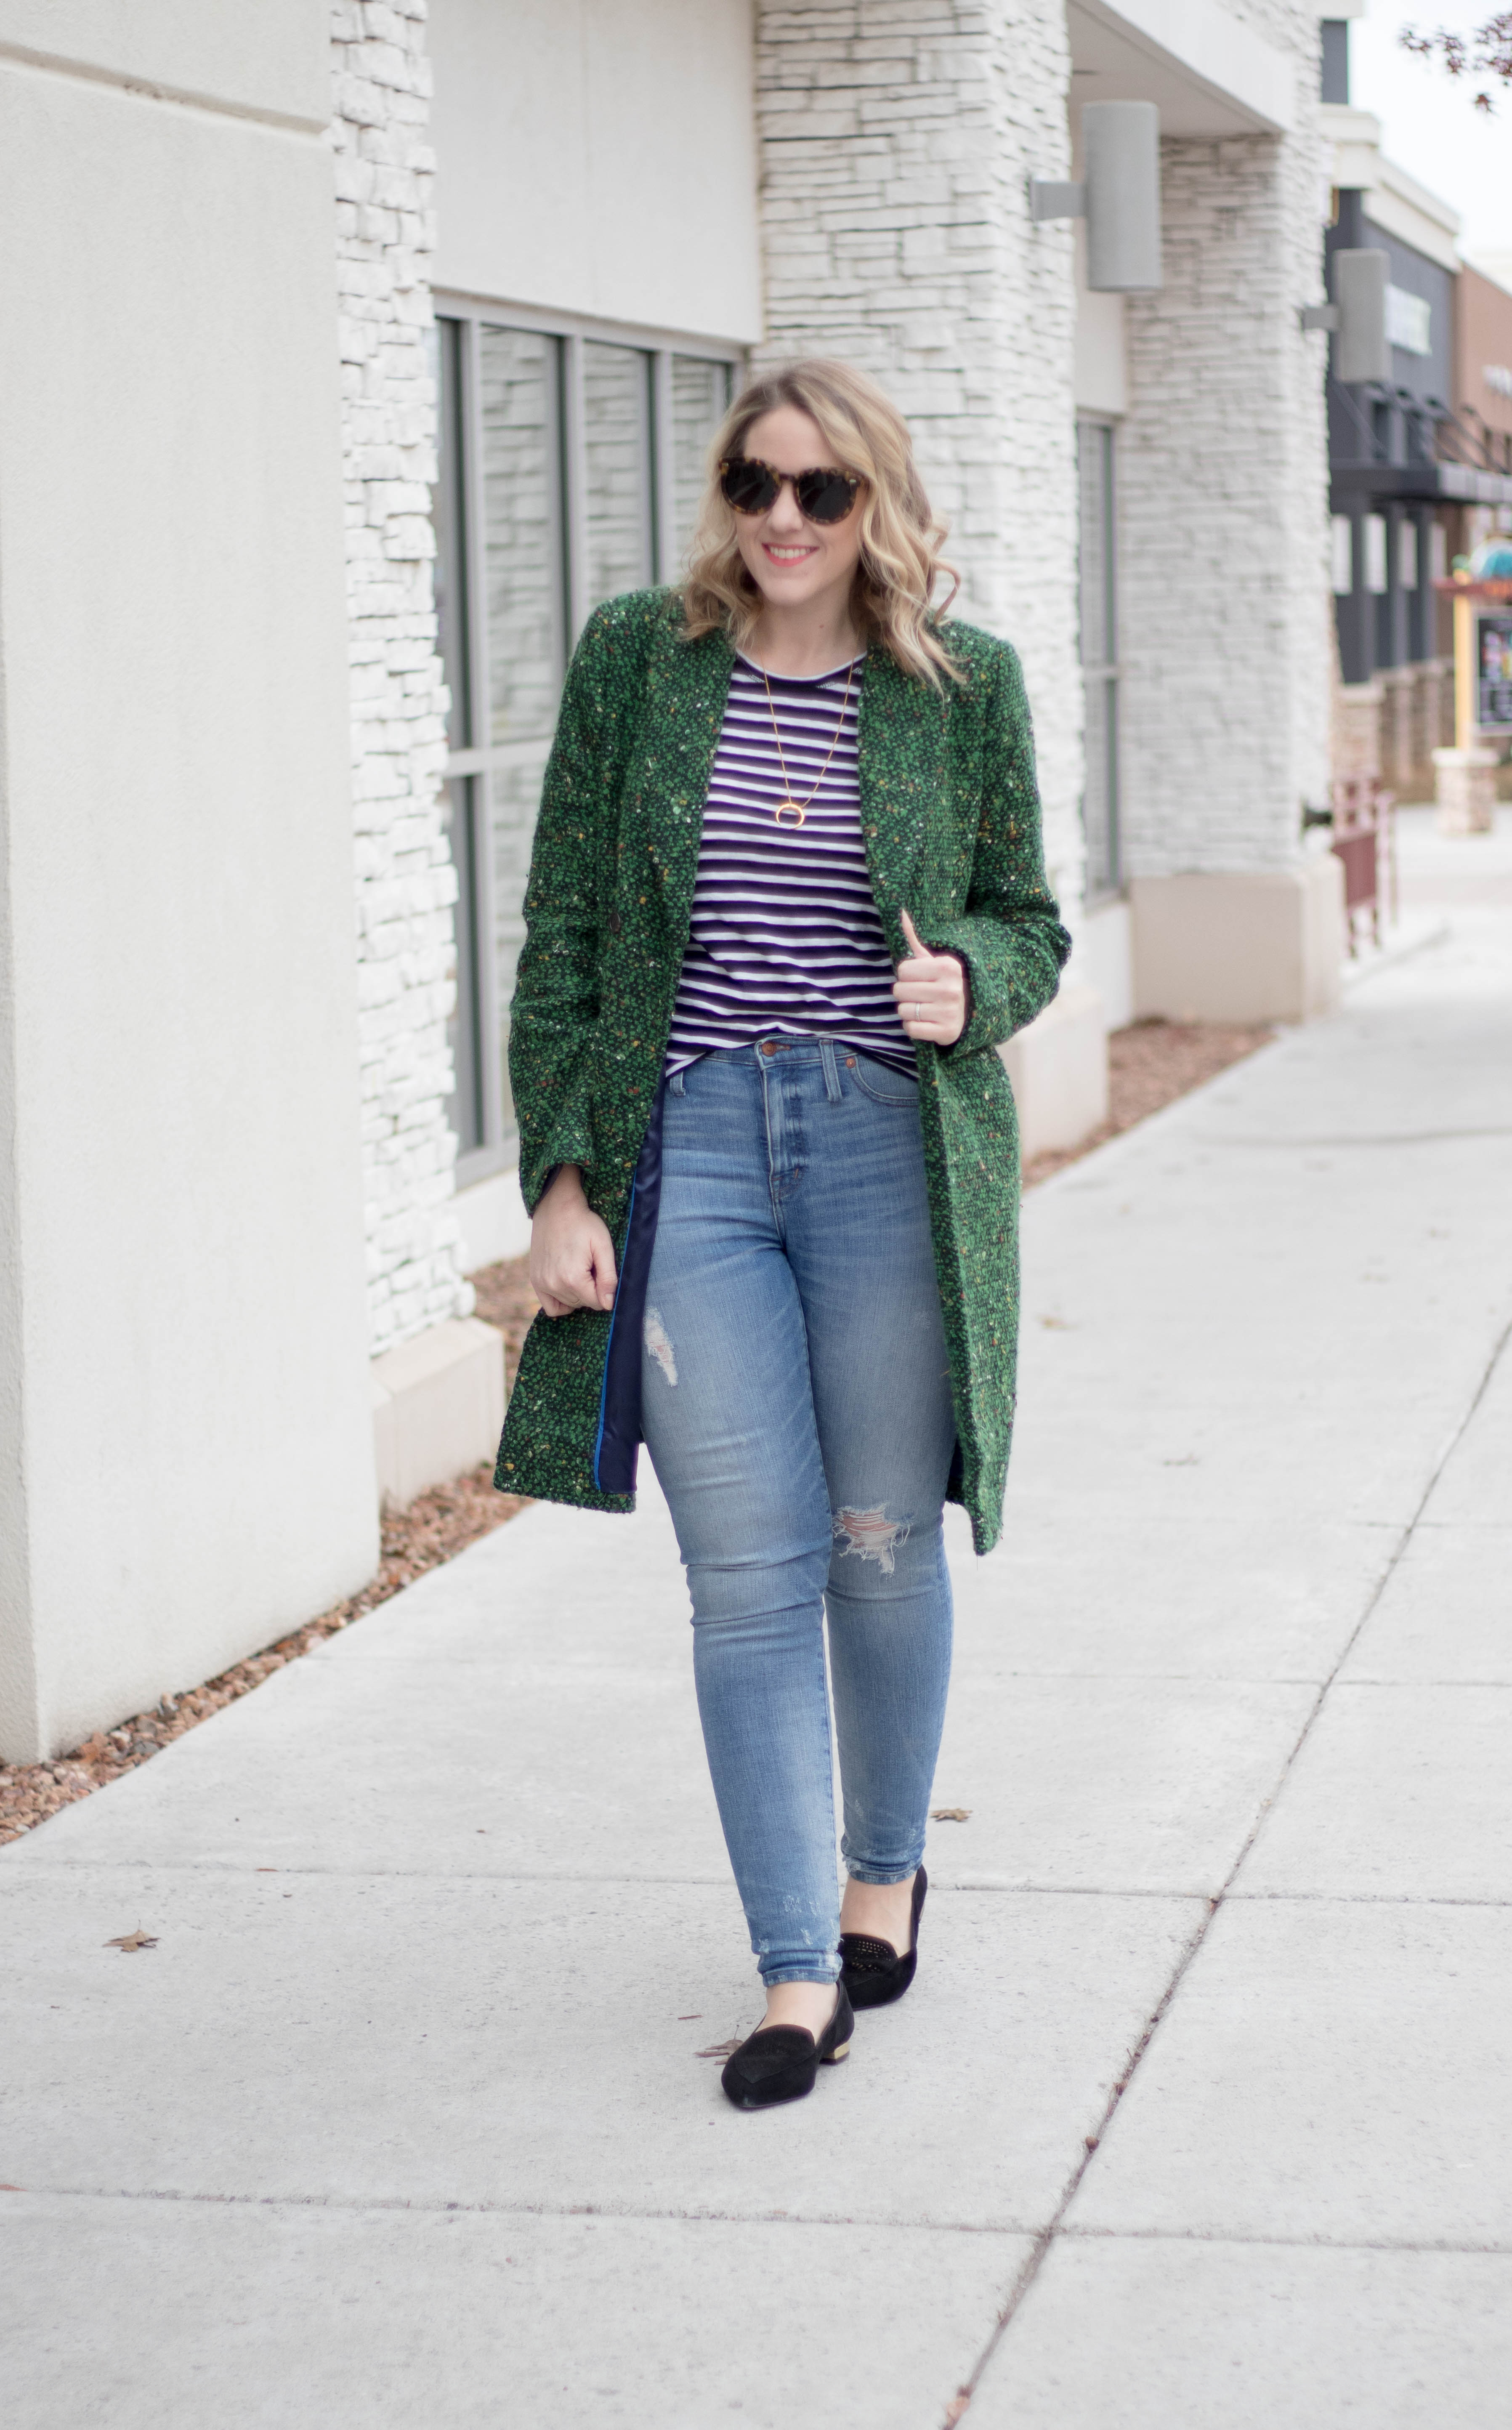 casual winter outfit with tweed coat #winterstyle #momstyle #jcrewcoat